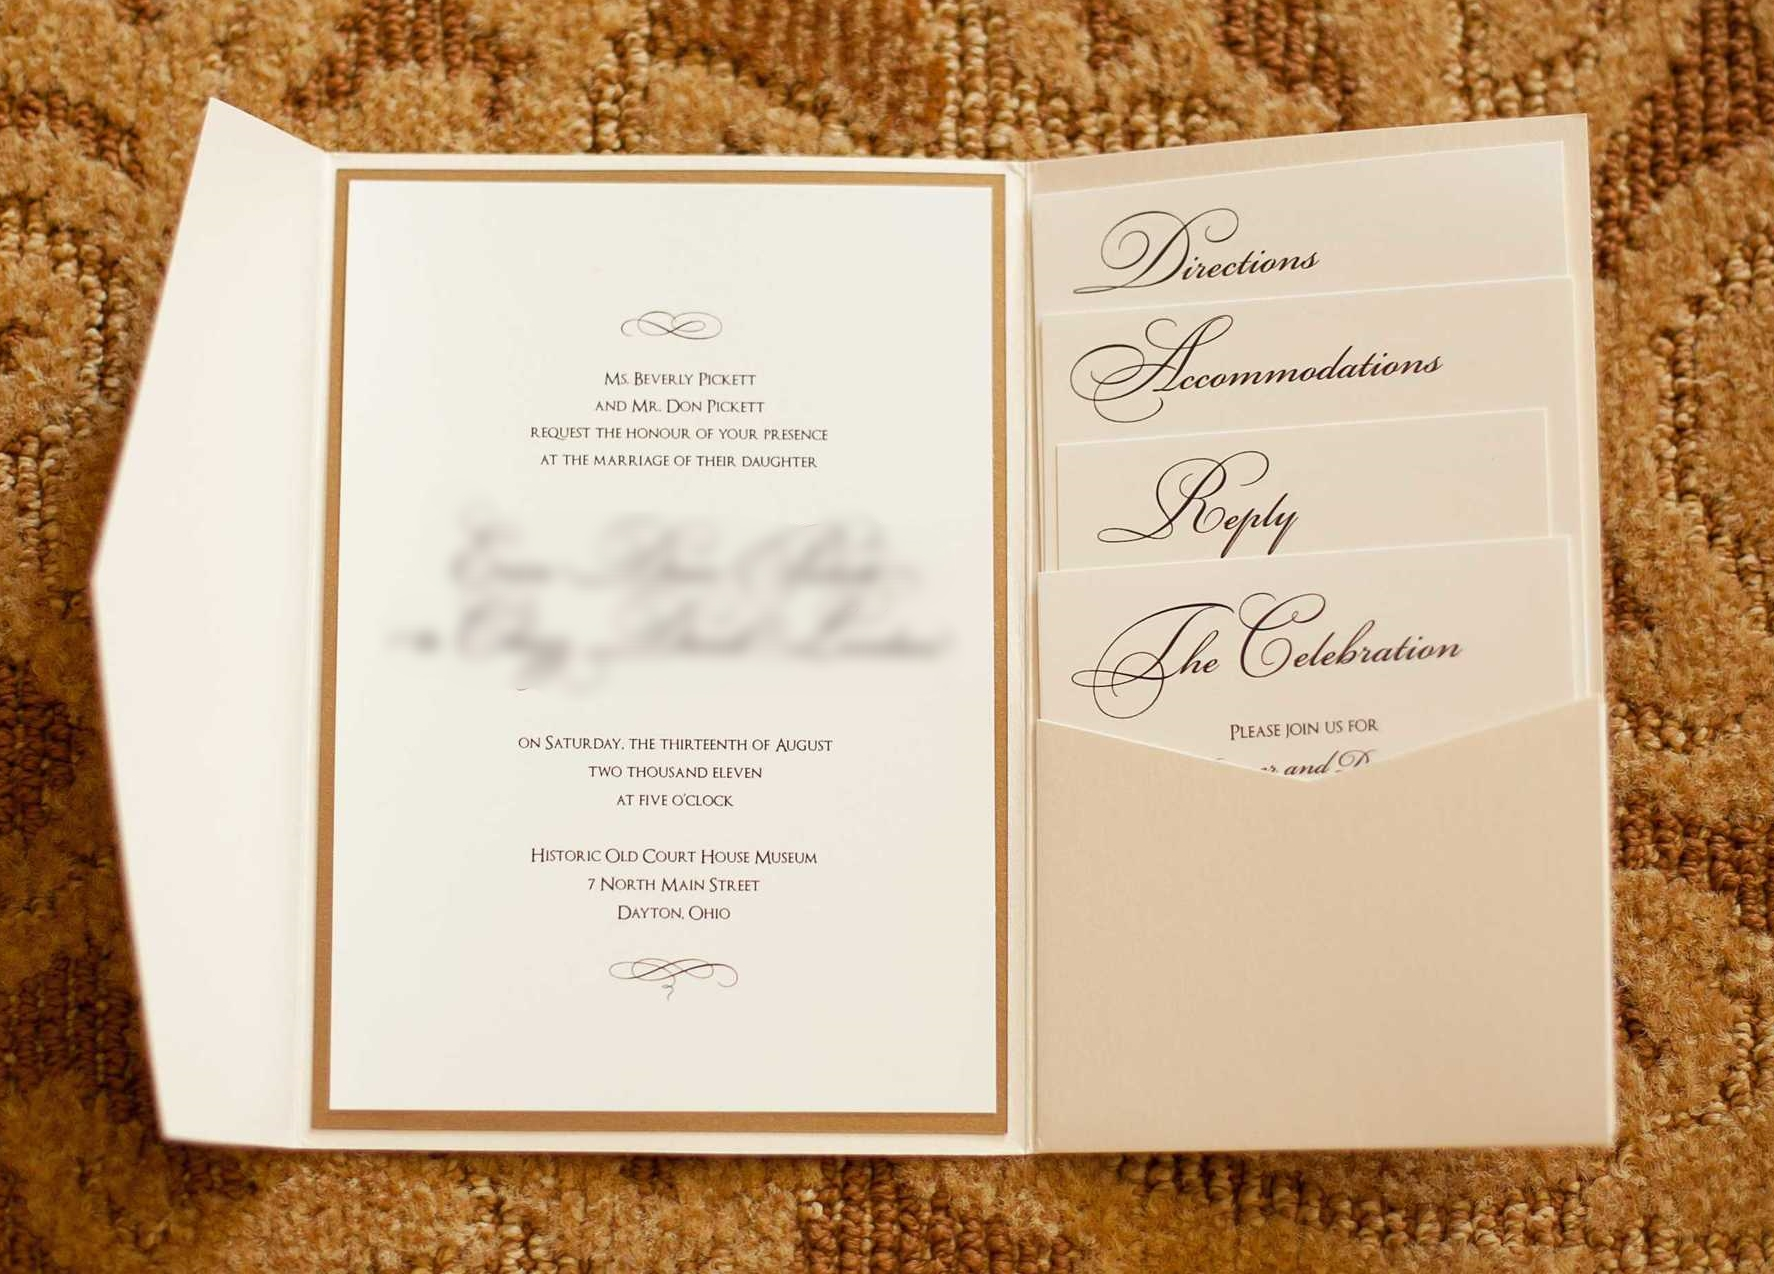 "img src=""httpwww.theparkwayevents.jpg"" alt=""San Francisco Bay Area Wedding Coordinator Custom Wedding Invitation Gold and Cream"".jpg"